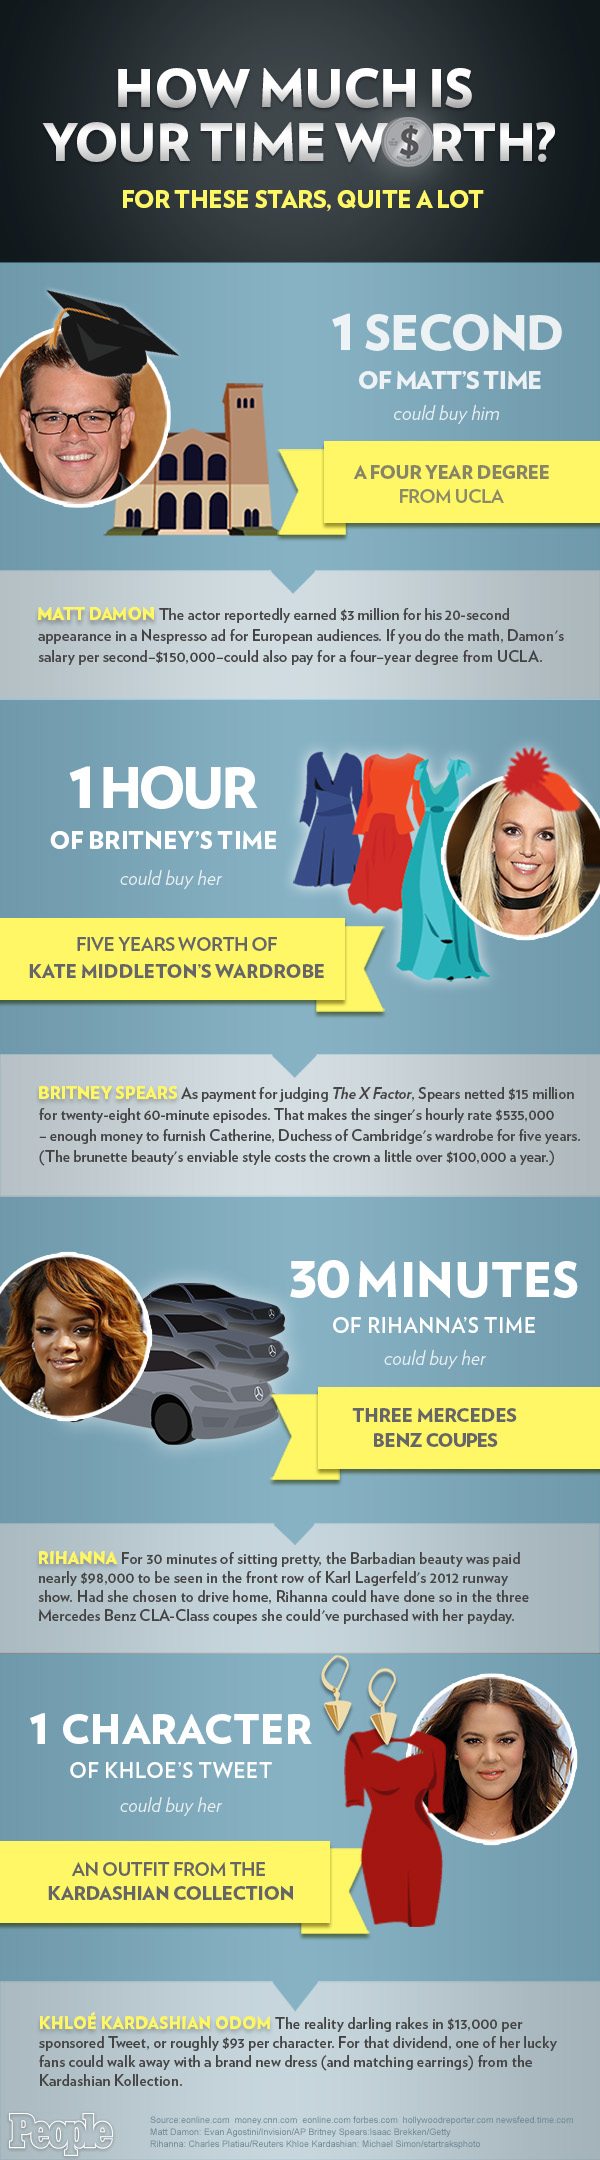 INFOGRAPHIC: Eye-Popping Celebrity Paychecks (What If You Made $150,000 a Second?!)| Britney Spears, Khloe Kardashian